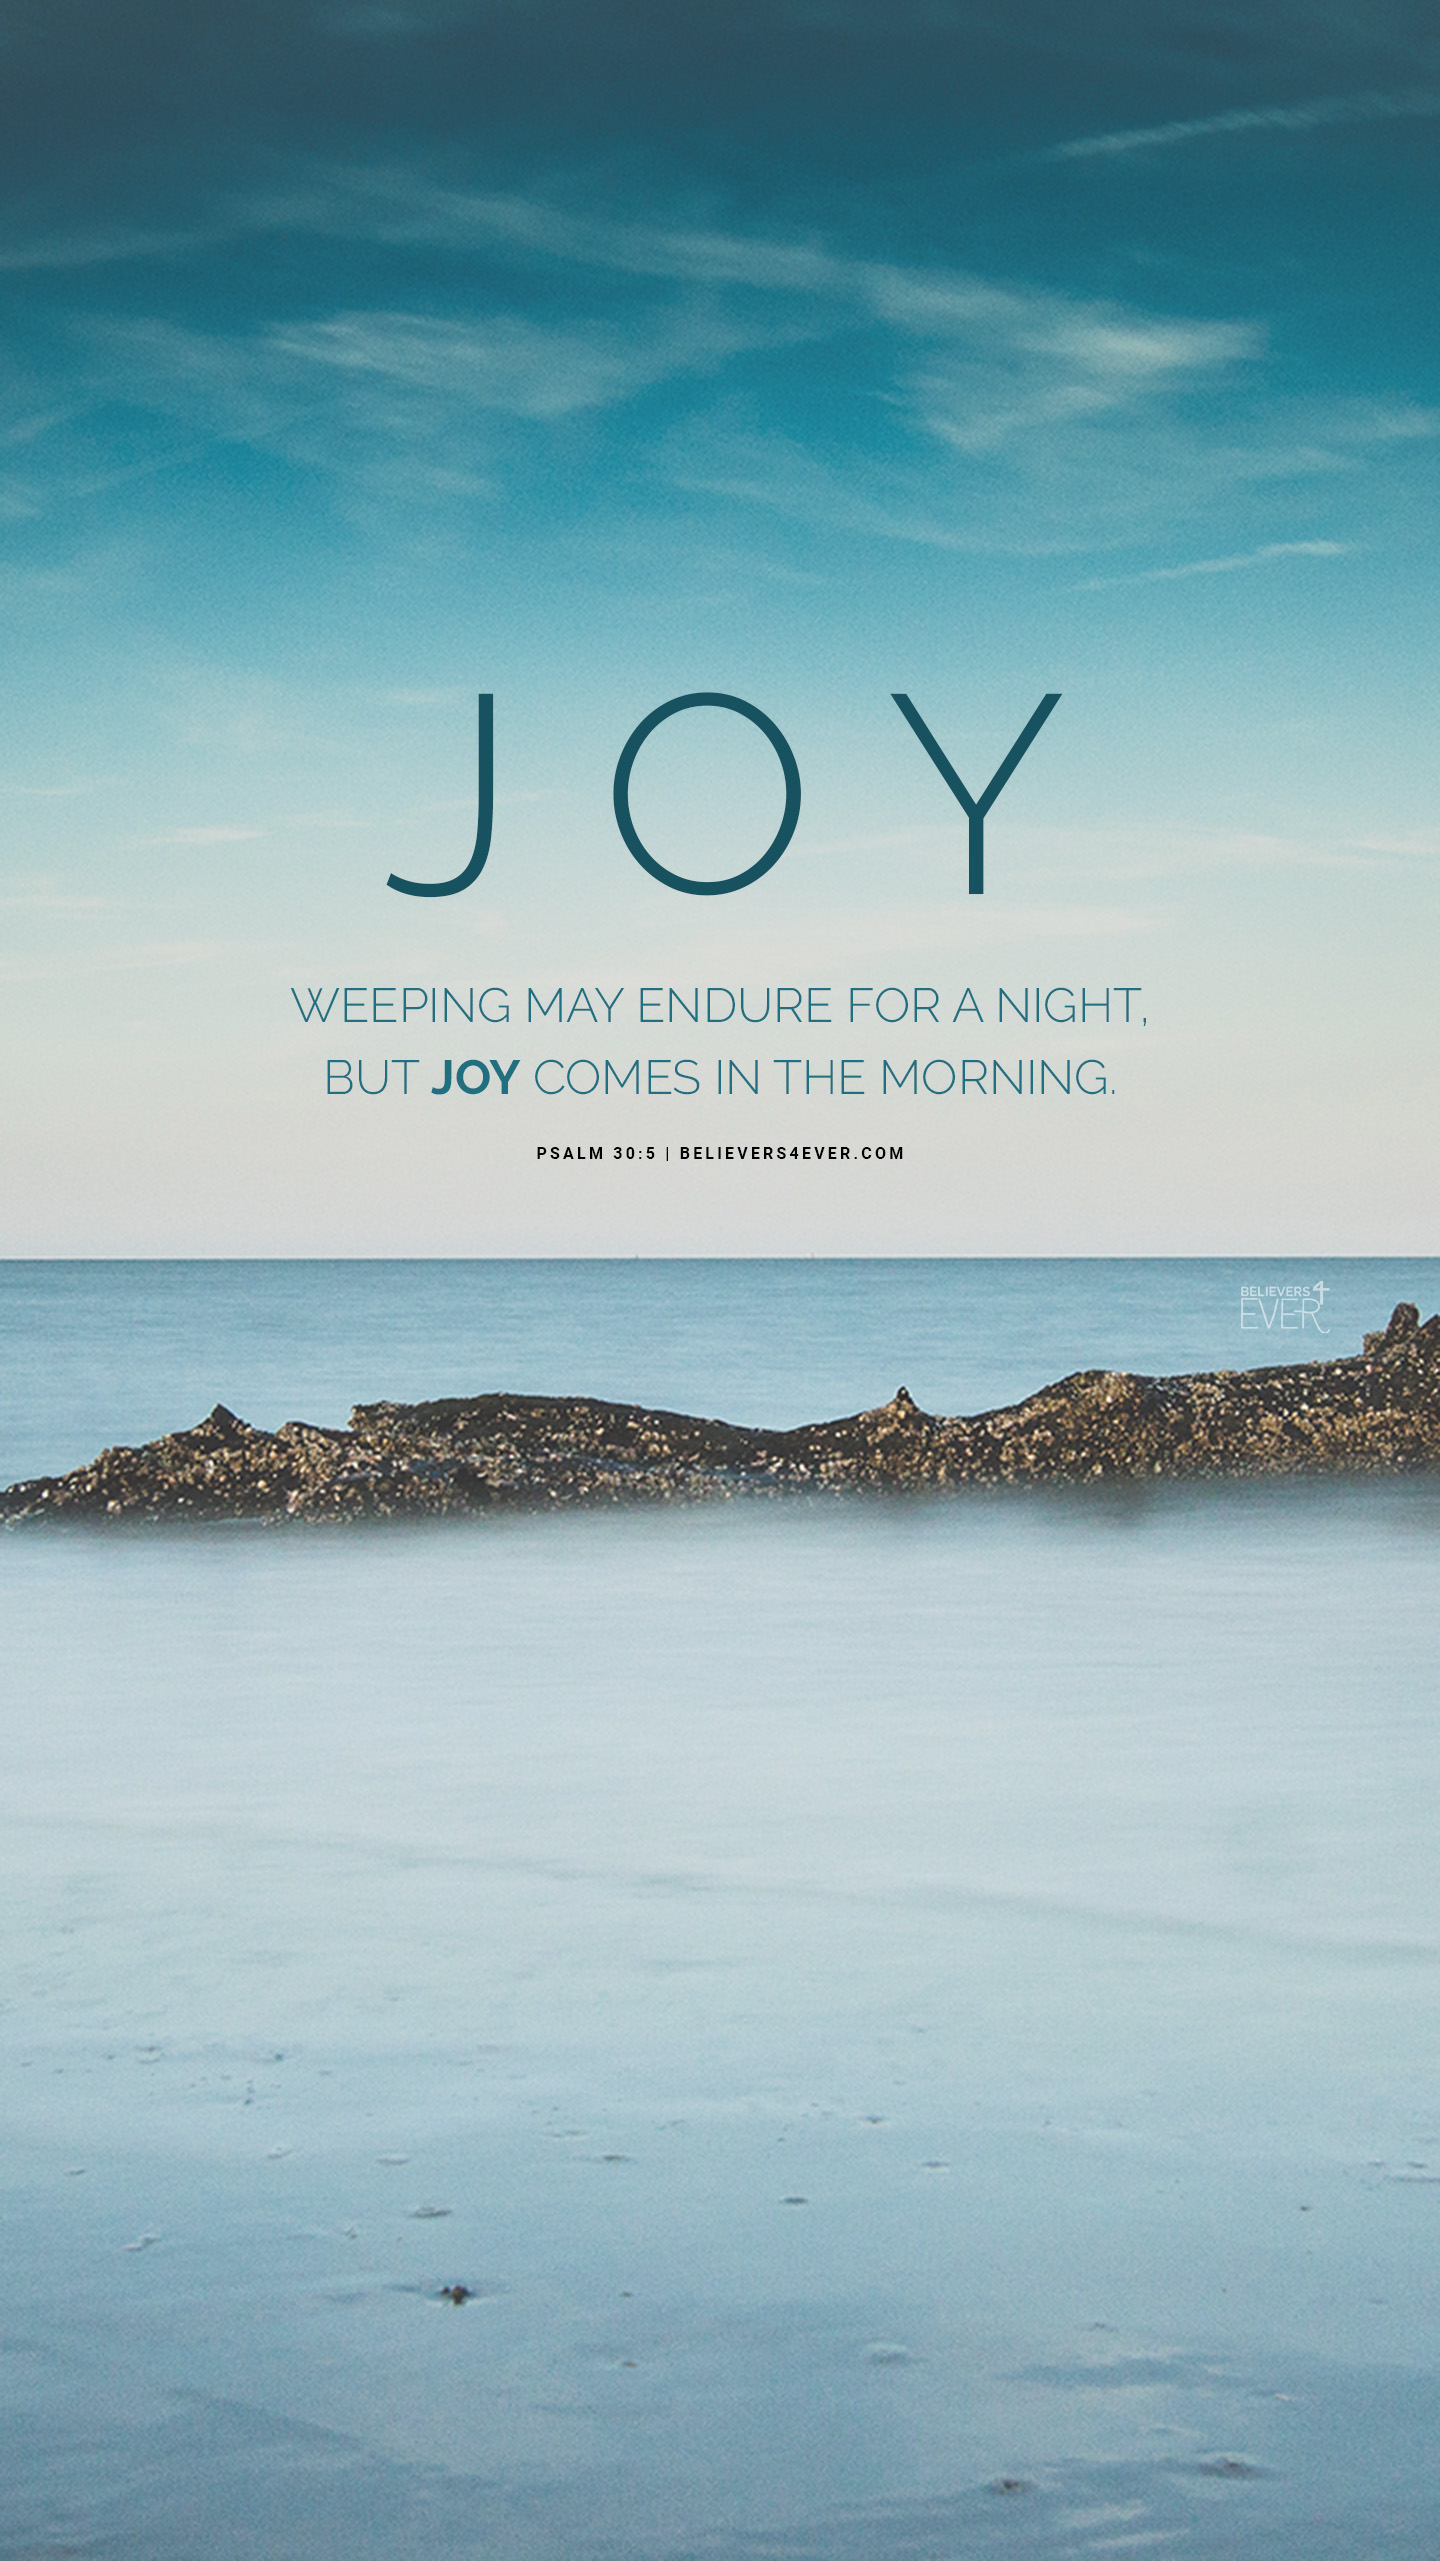 Samsung Galaxy S3 Wallpaper Quotes Joy Comes In The Morning Believers4ever Com